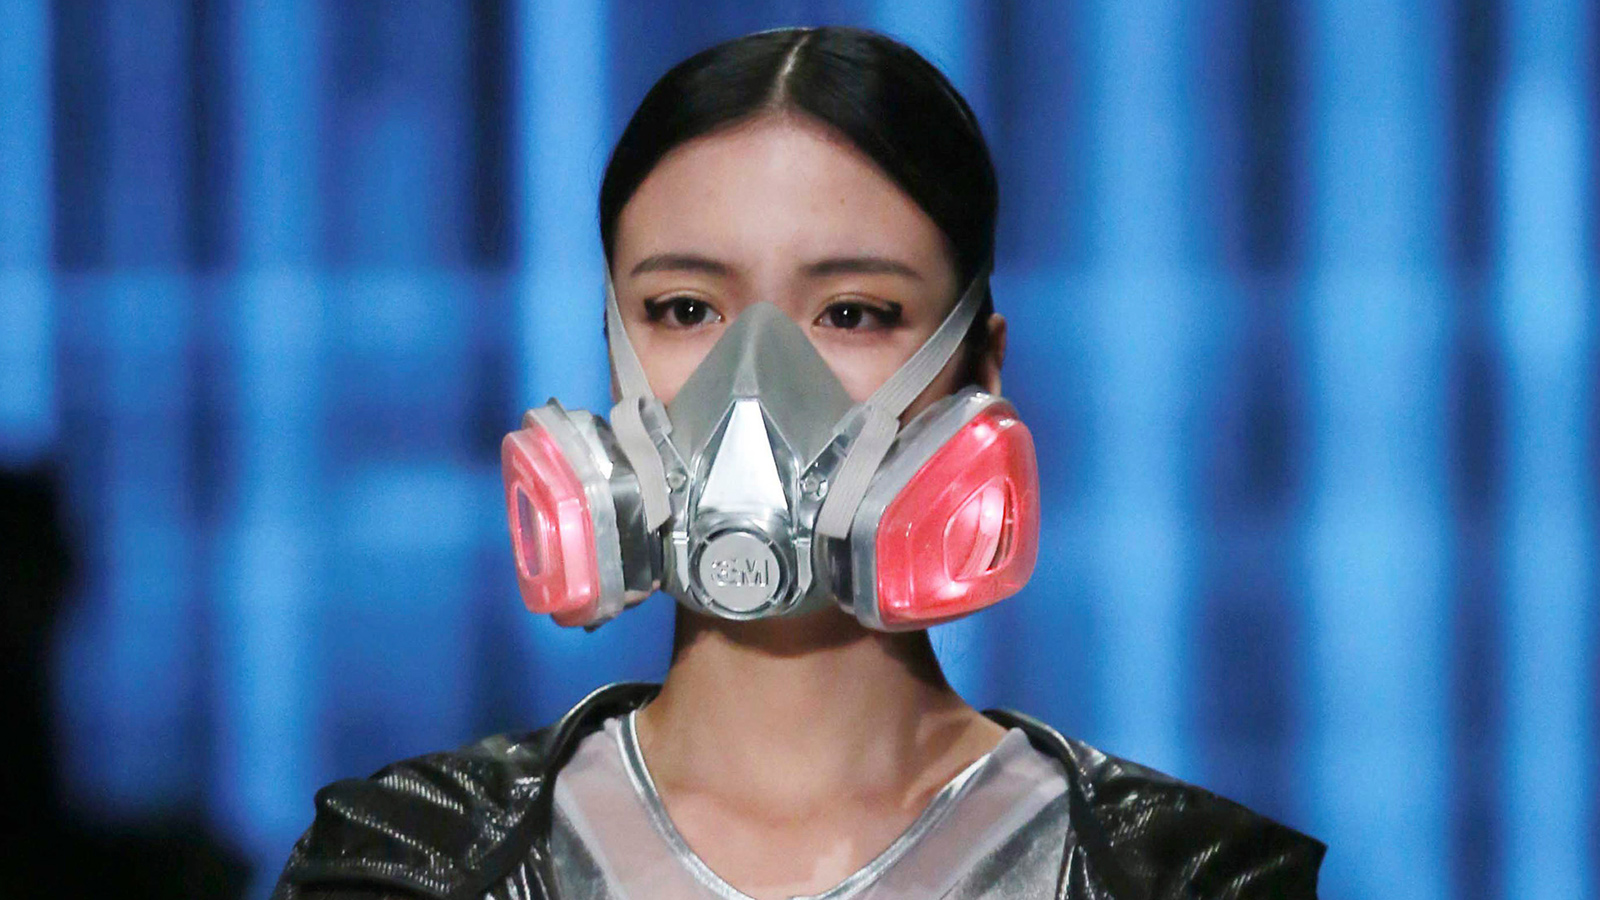 A model wearing a mask presents a creation at the QIAODAN Yin Peng Sports Wear Collection show during China Fashion Week in Beijing, October 28, 2014.